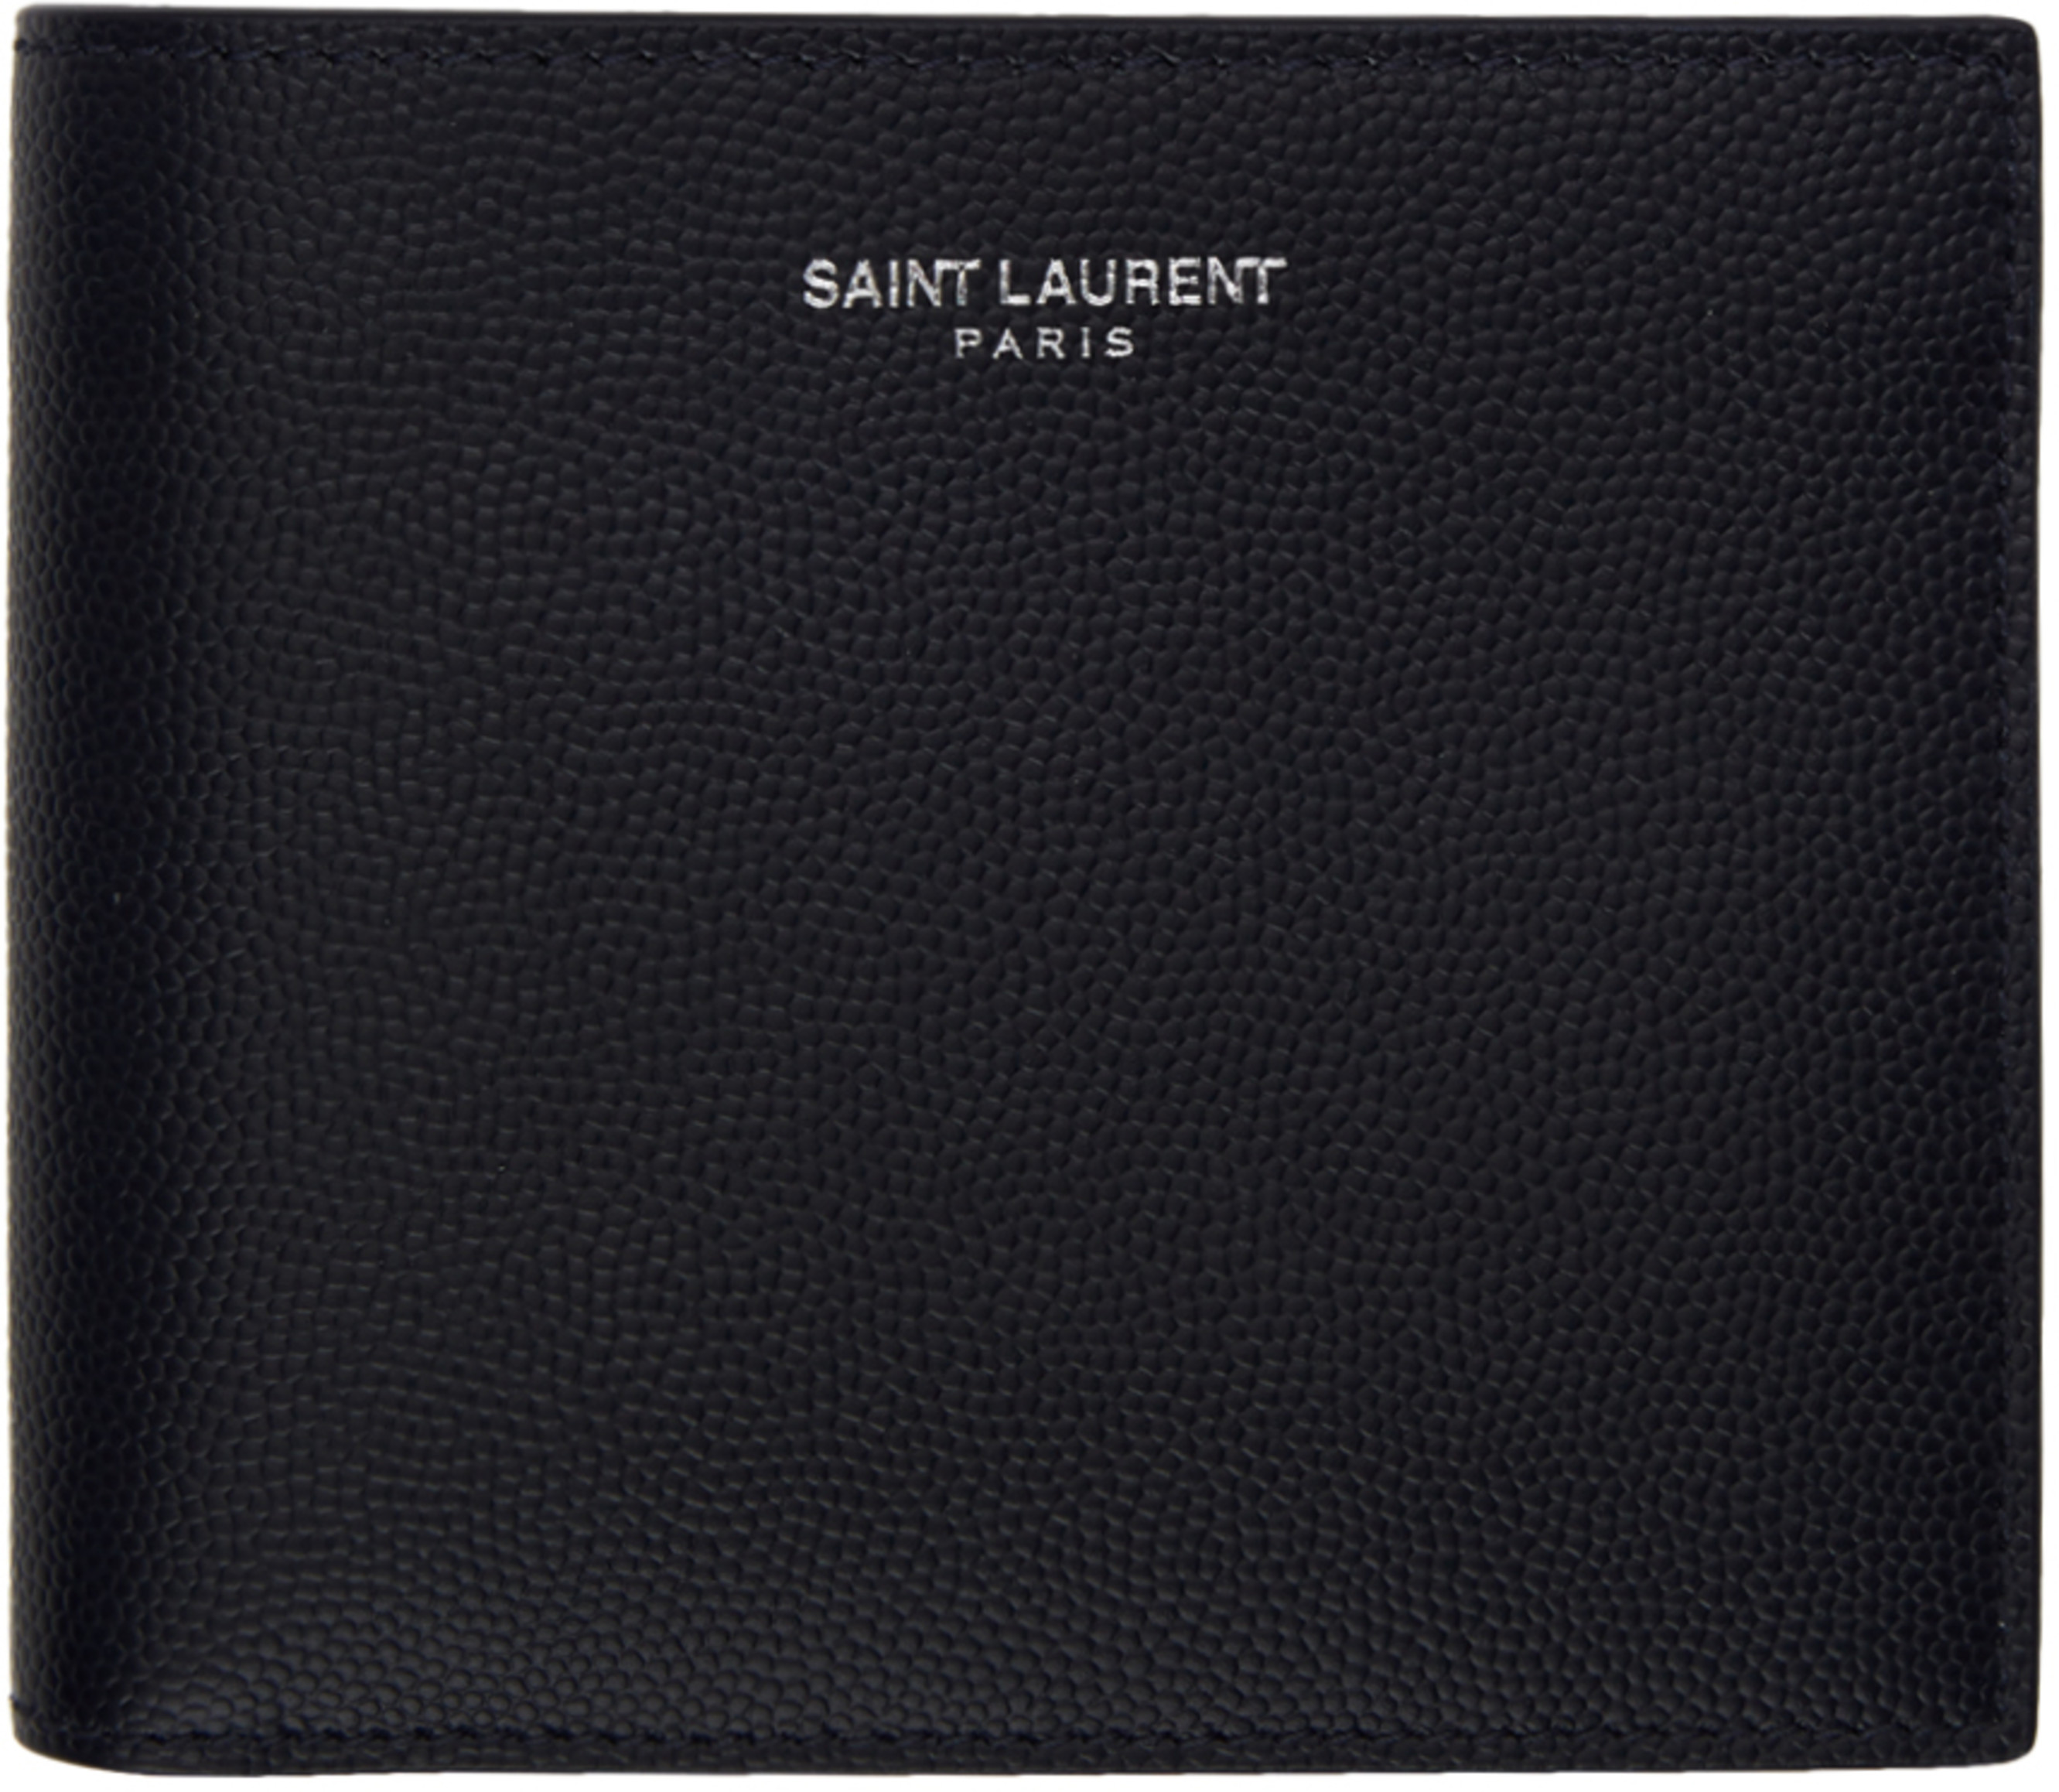 8065642afa2 Saint Laurent for Men FW19 Collection | SSENSE